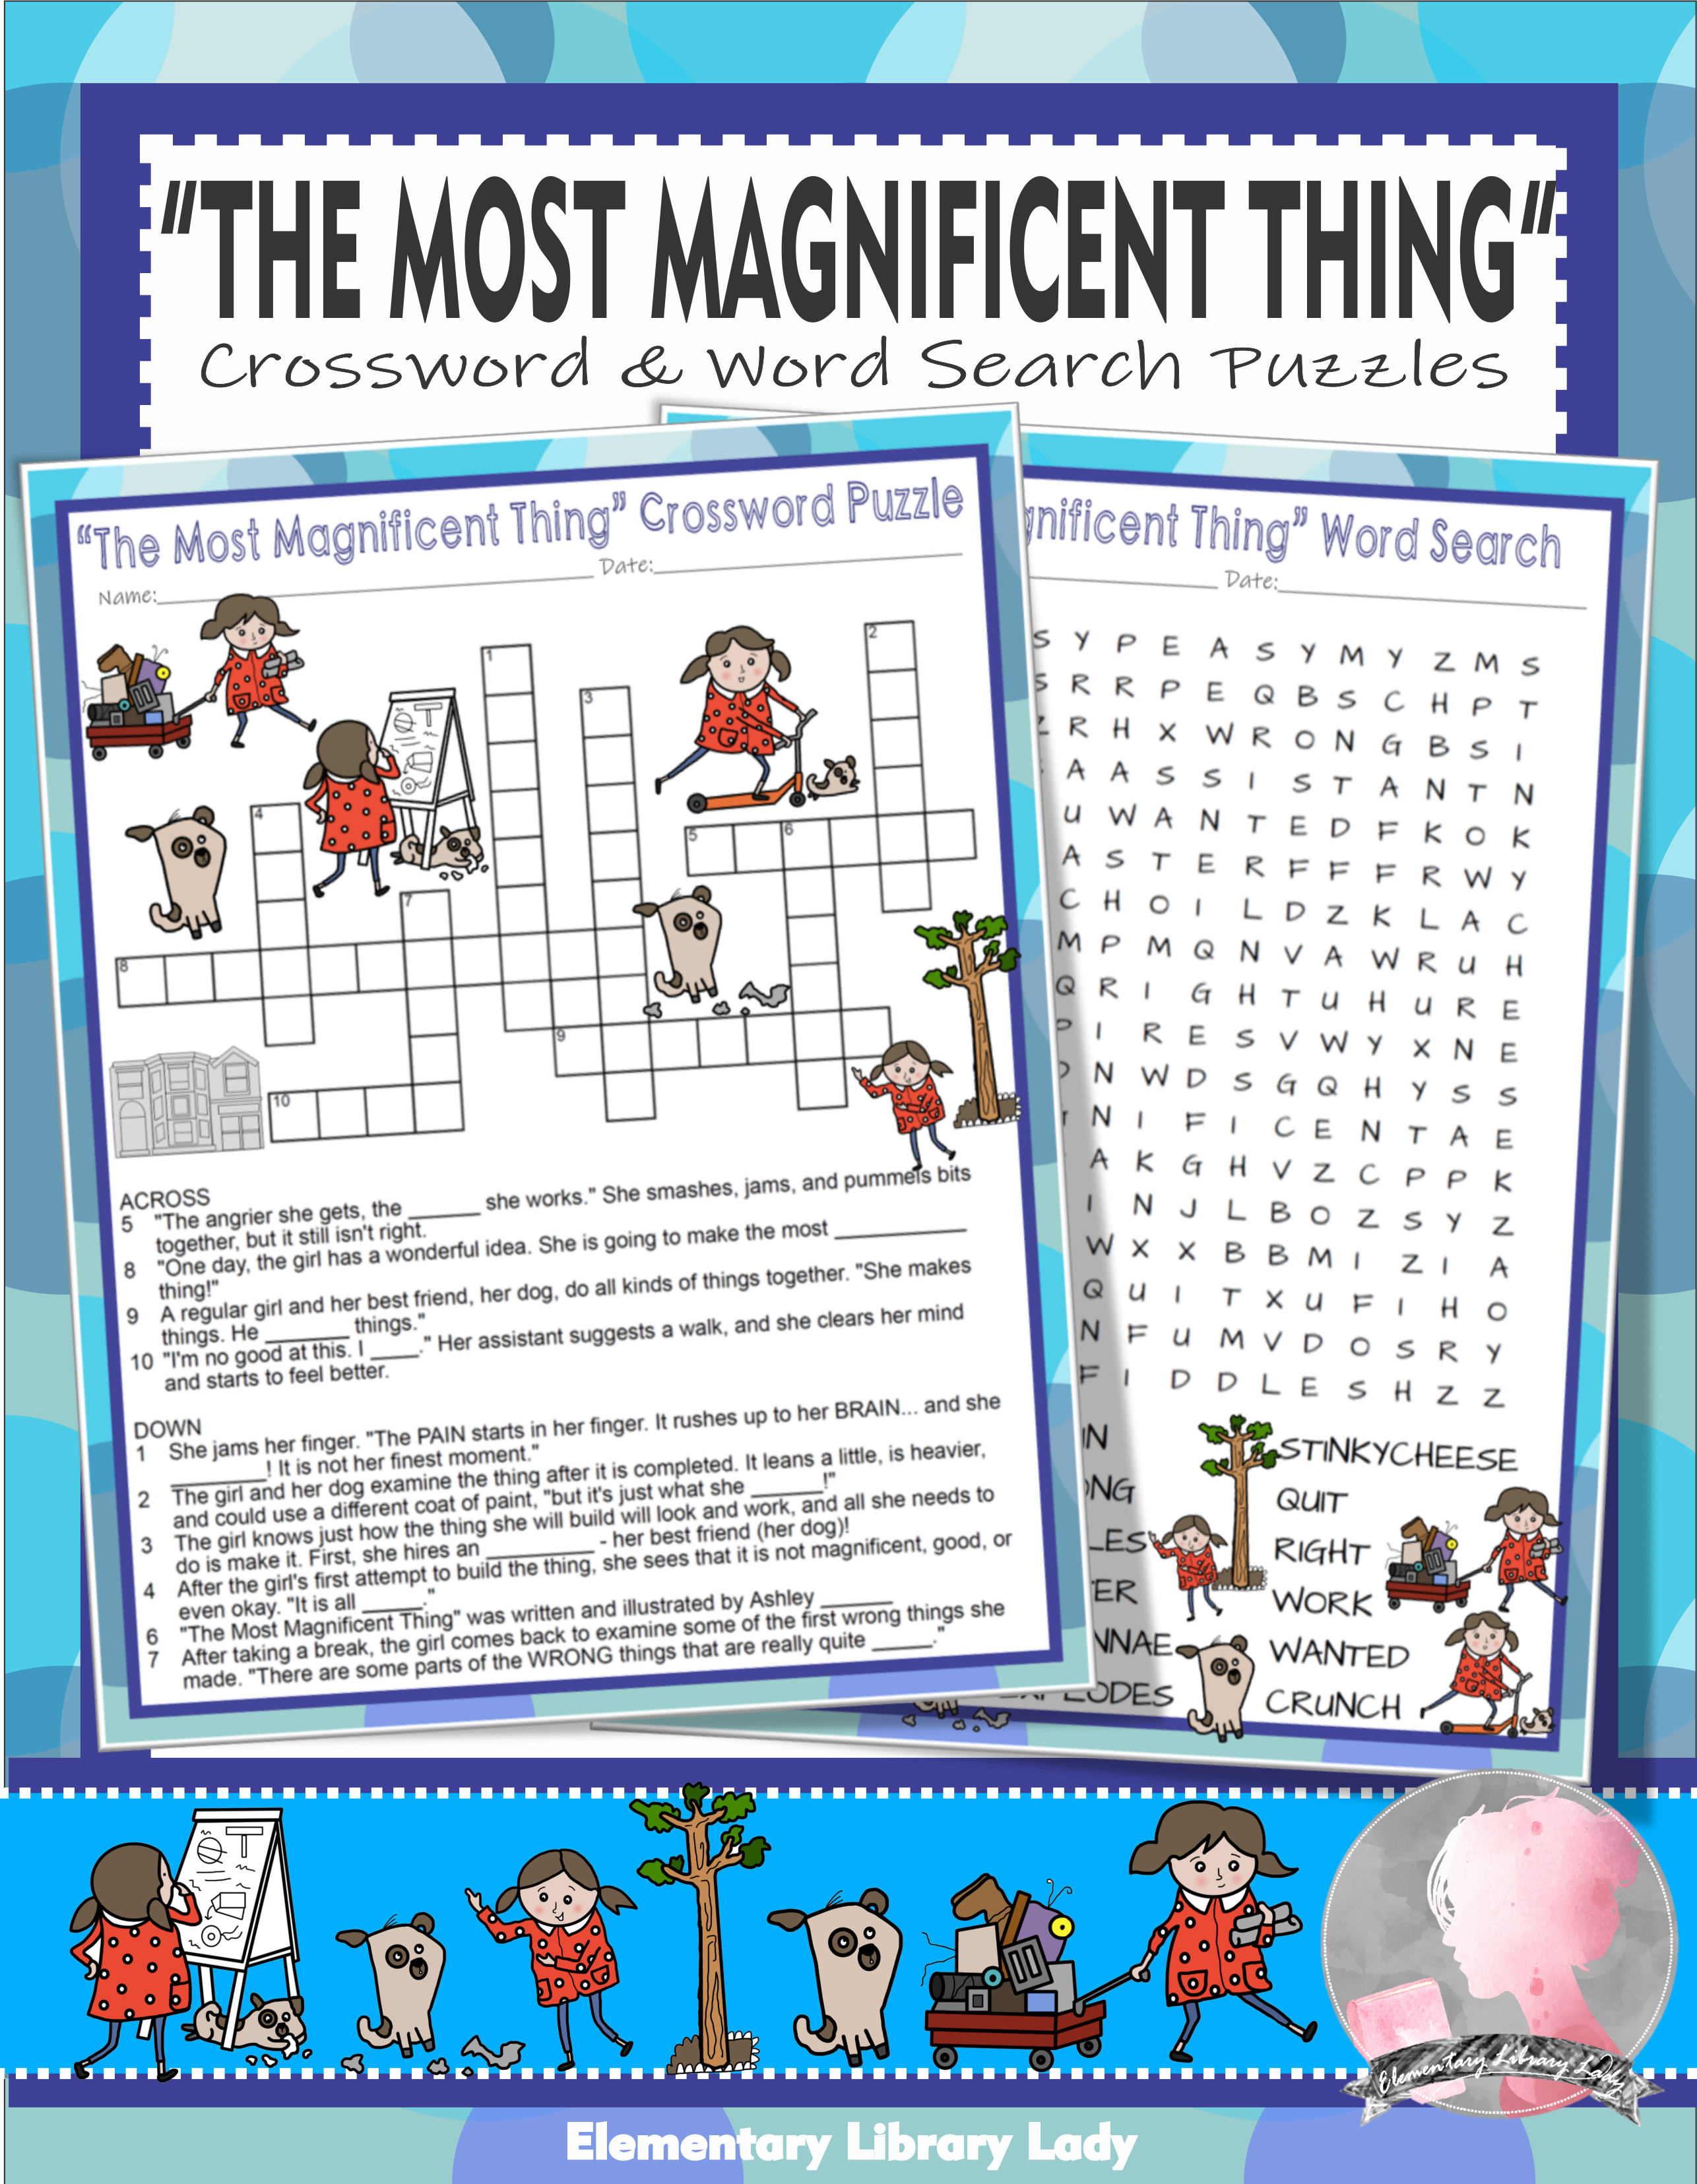 The Most Magnificent Thing Activities Spires Crossword Puzzle And Word Searches The Most Magnificent Thing Activities Learning Science